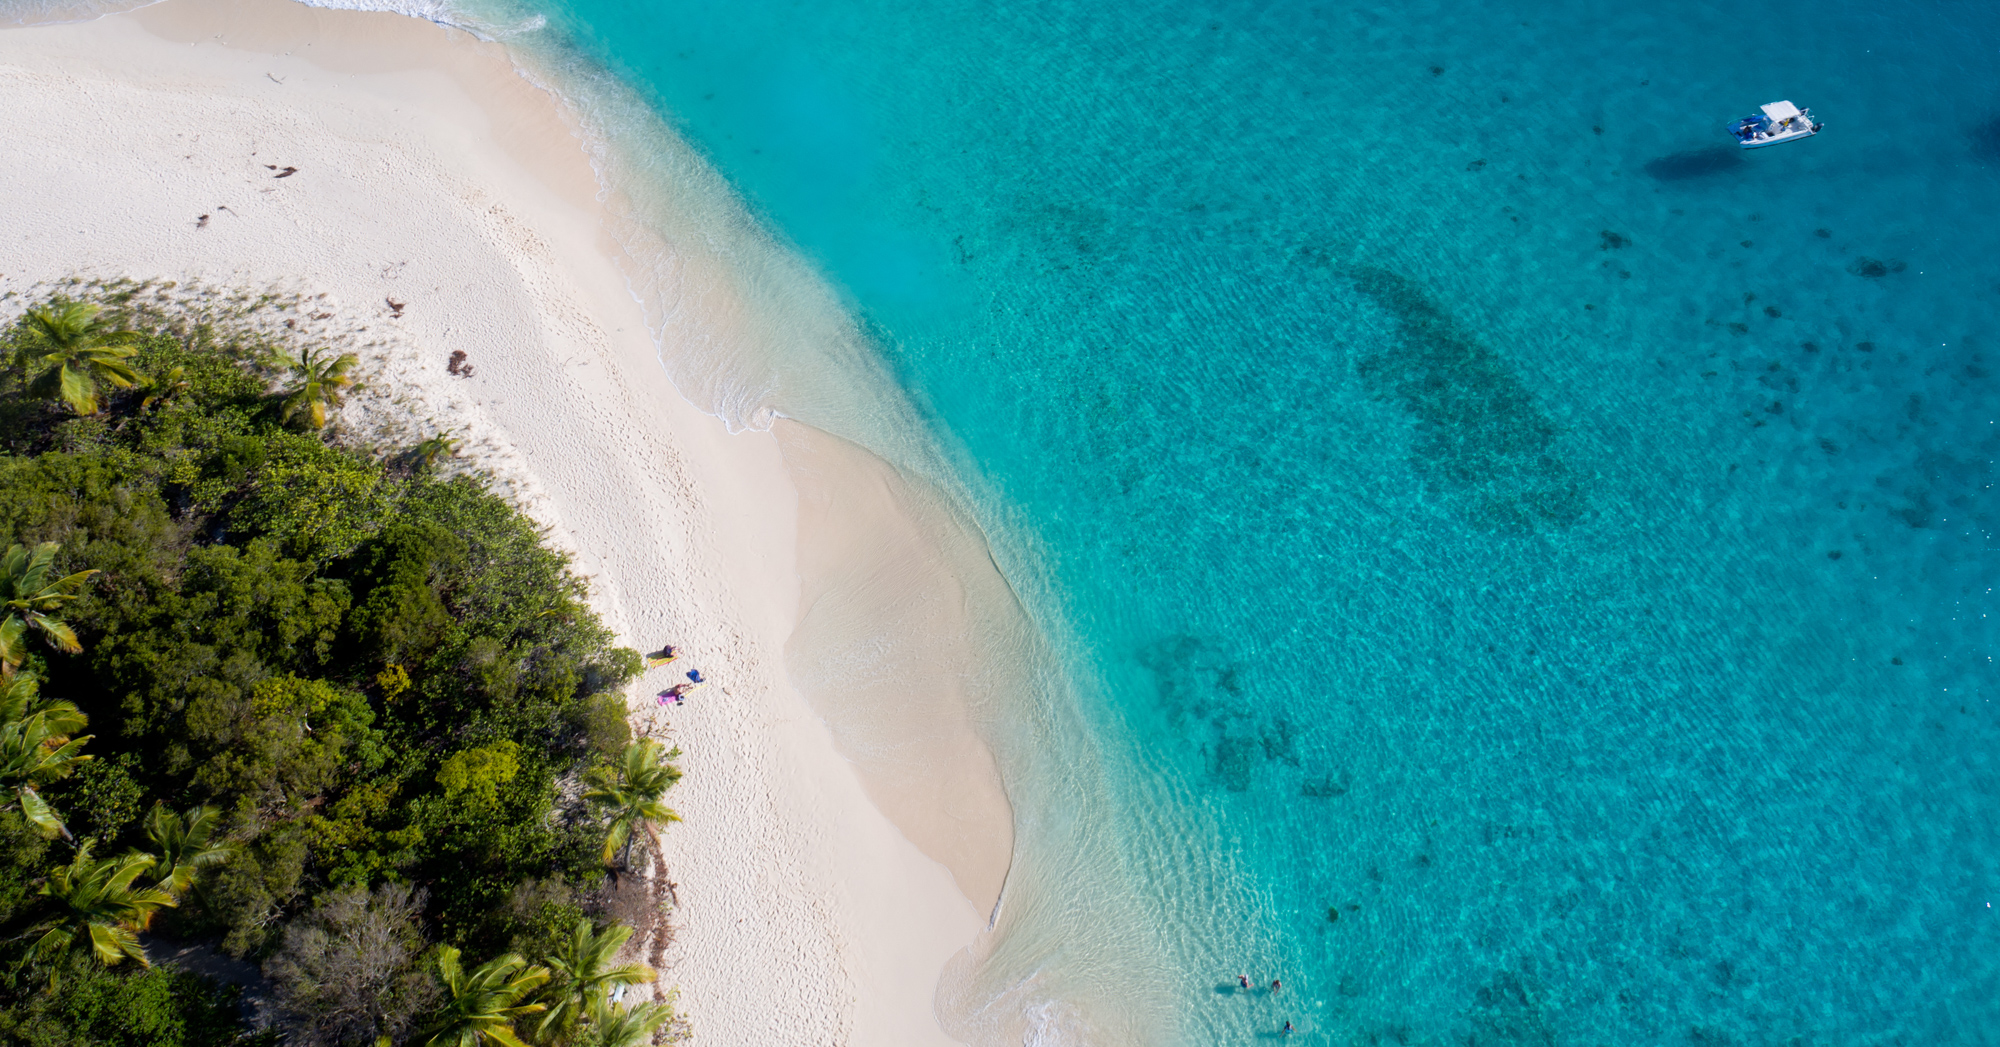 Flights to Bahamas with BahamasAirTours and visit Treasure Cay and Green Turtle Cay. Day trip from Florida to Bahamas or take a private bahamas charter flights. Our unique Treaure Cay flights will have you visiting the Abacos and Green Turtle Cay.